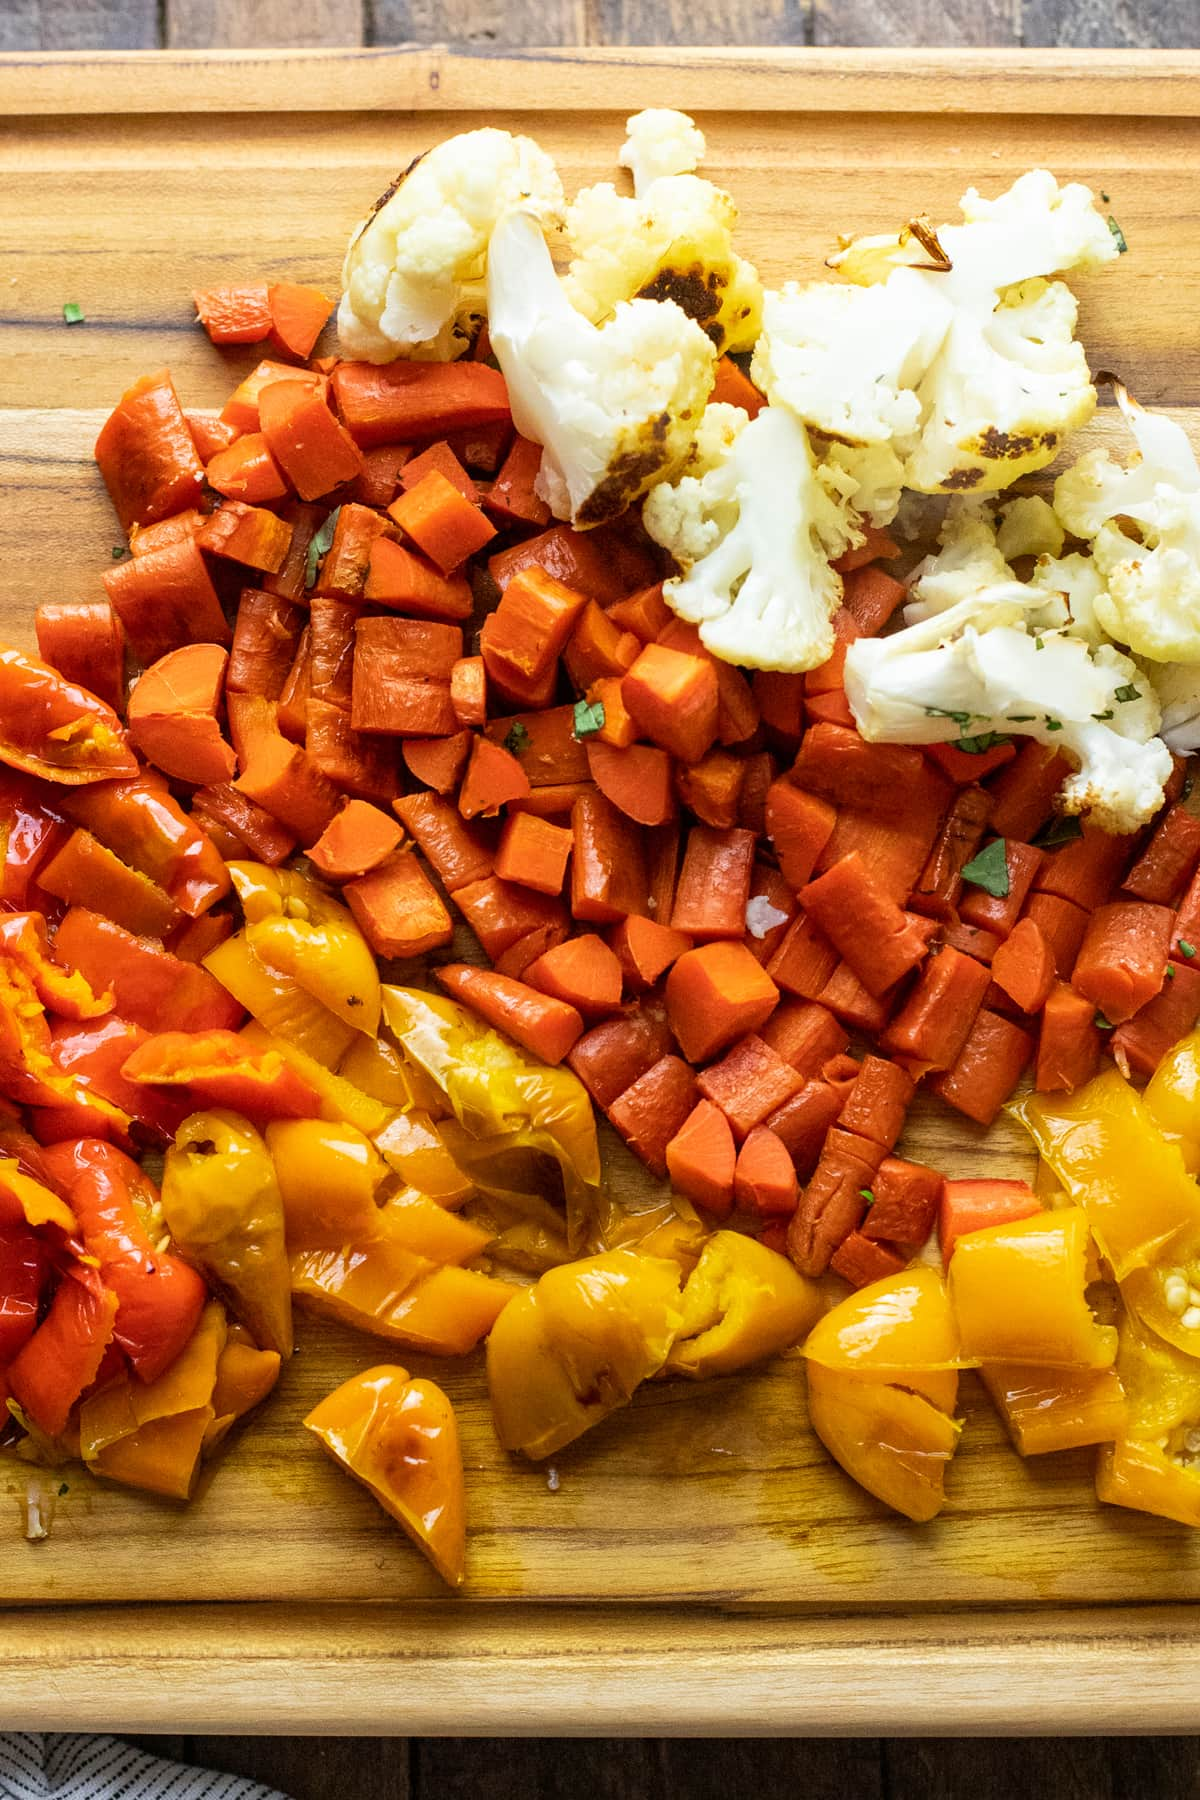 roasted vegetables chopped into pieces on wooden cutting board.